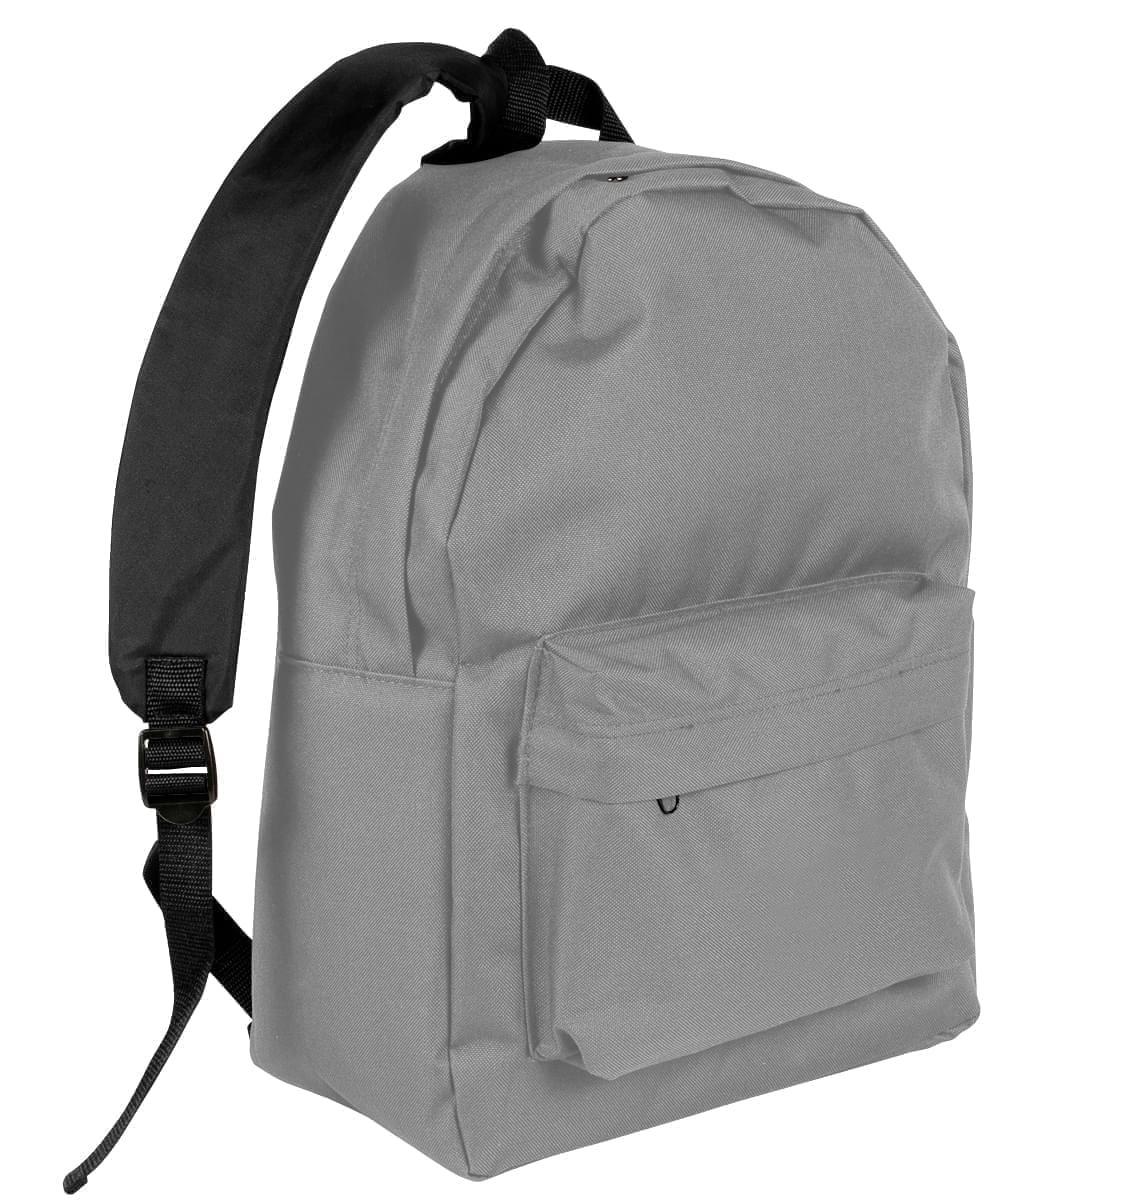 USA Made Nylon Poly Backpack Knapsacks, Grey-Black, 8960-A1R